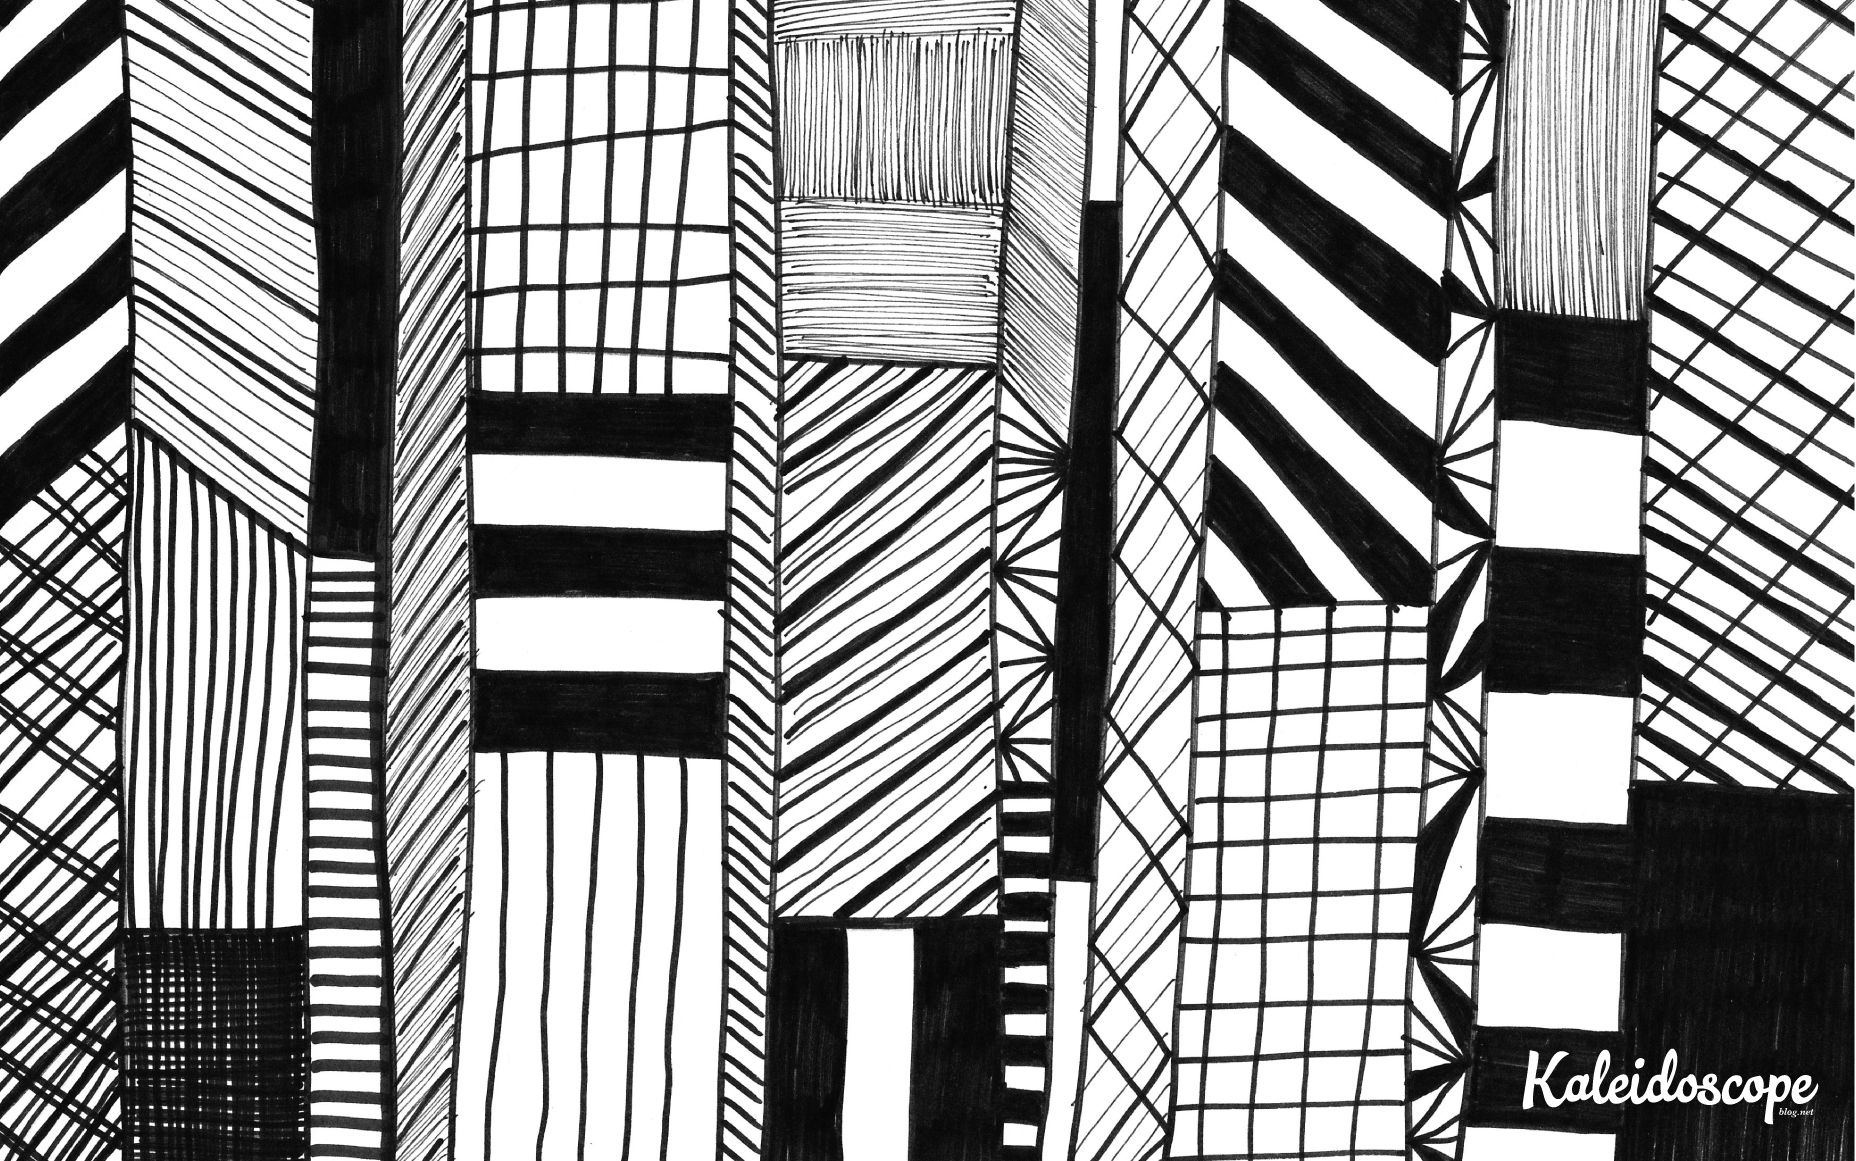 Black And White Hand Drawn Geometric Pattern Computer Desktop Wallpaper Design From Kaleidoscope Blog